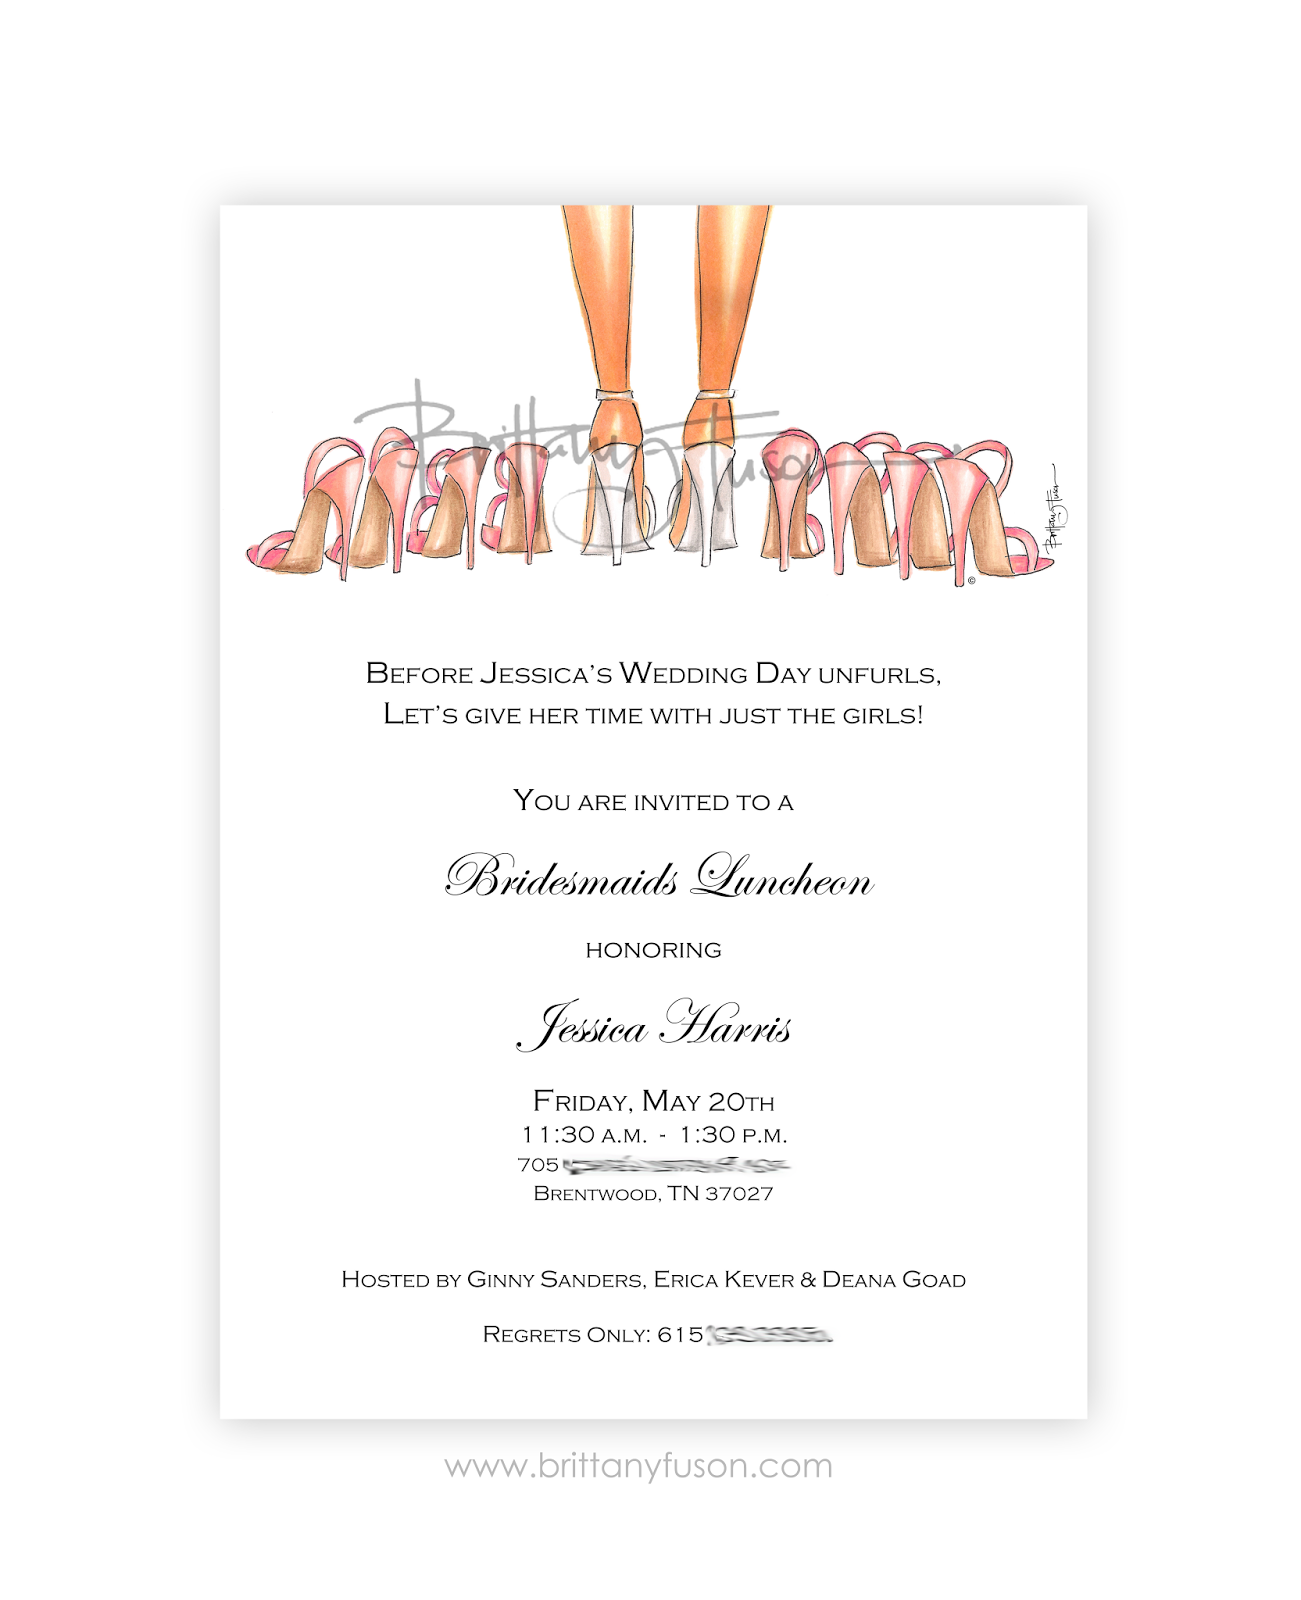 Bridesmaids Luncheon Invitations Will You Be My Bridesmaid